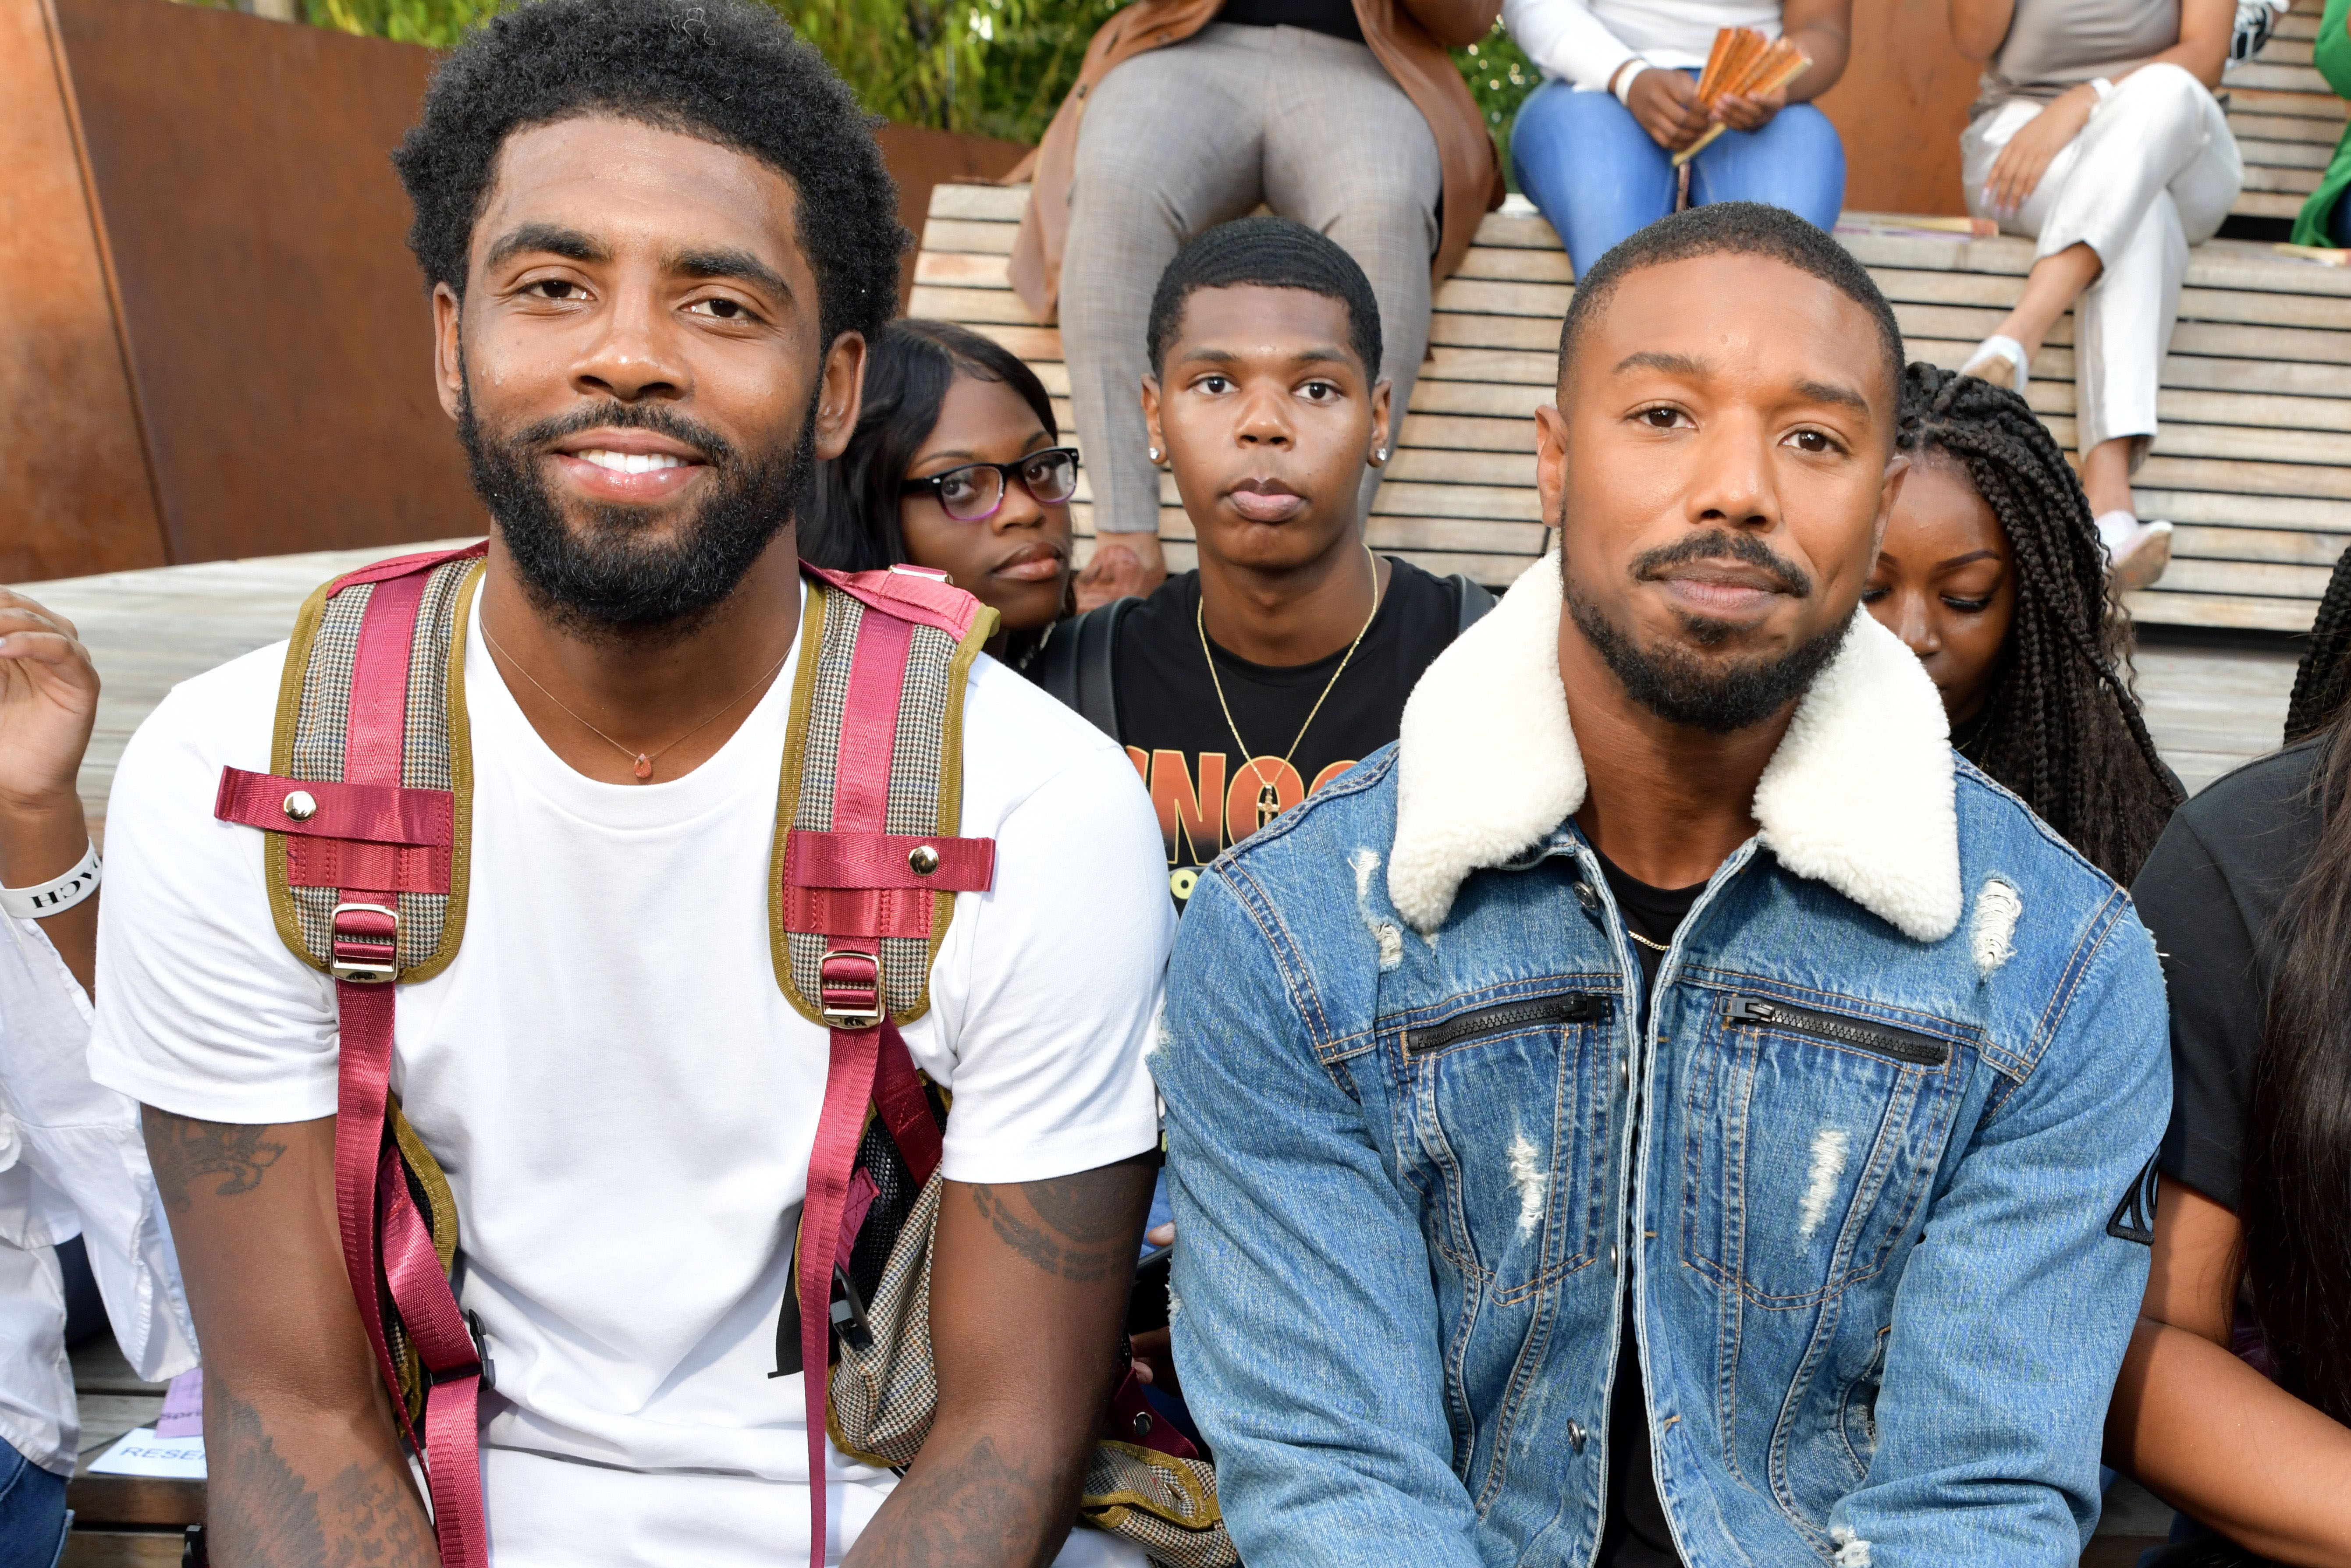 Kyrie Irving and Michael B. Jordan in the front rowCoach 1941 show, Front Row, Spring Summer 2020, New York Fashion Week, USA - 10 Sep 2019